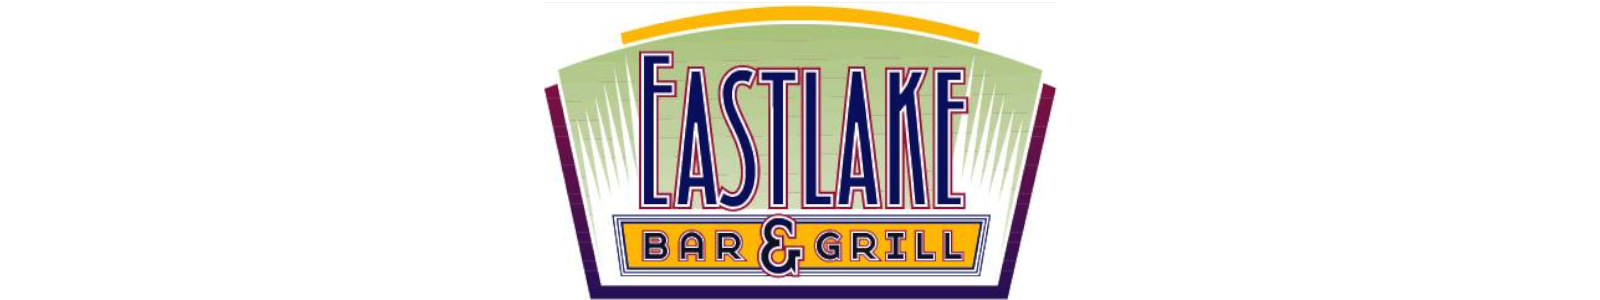 Eastlake Bar and Grill - Business Sponsor of The DJ Sessions